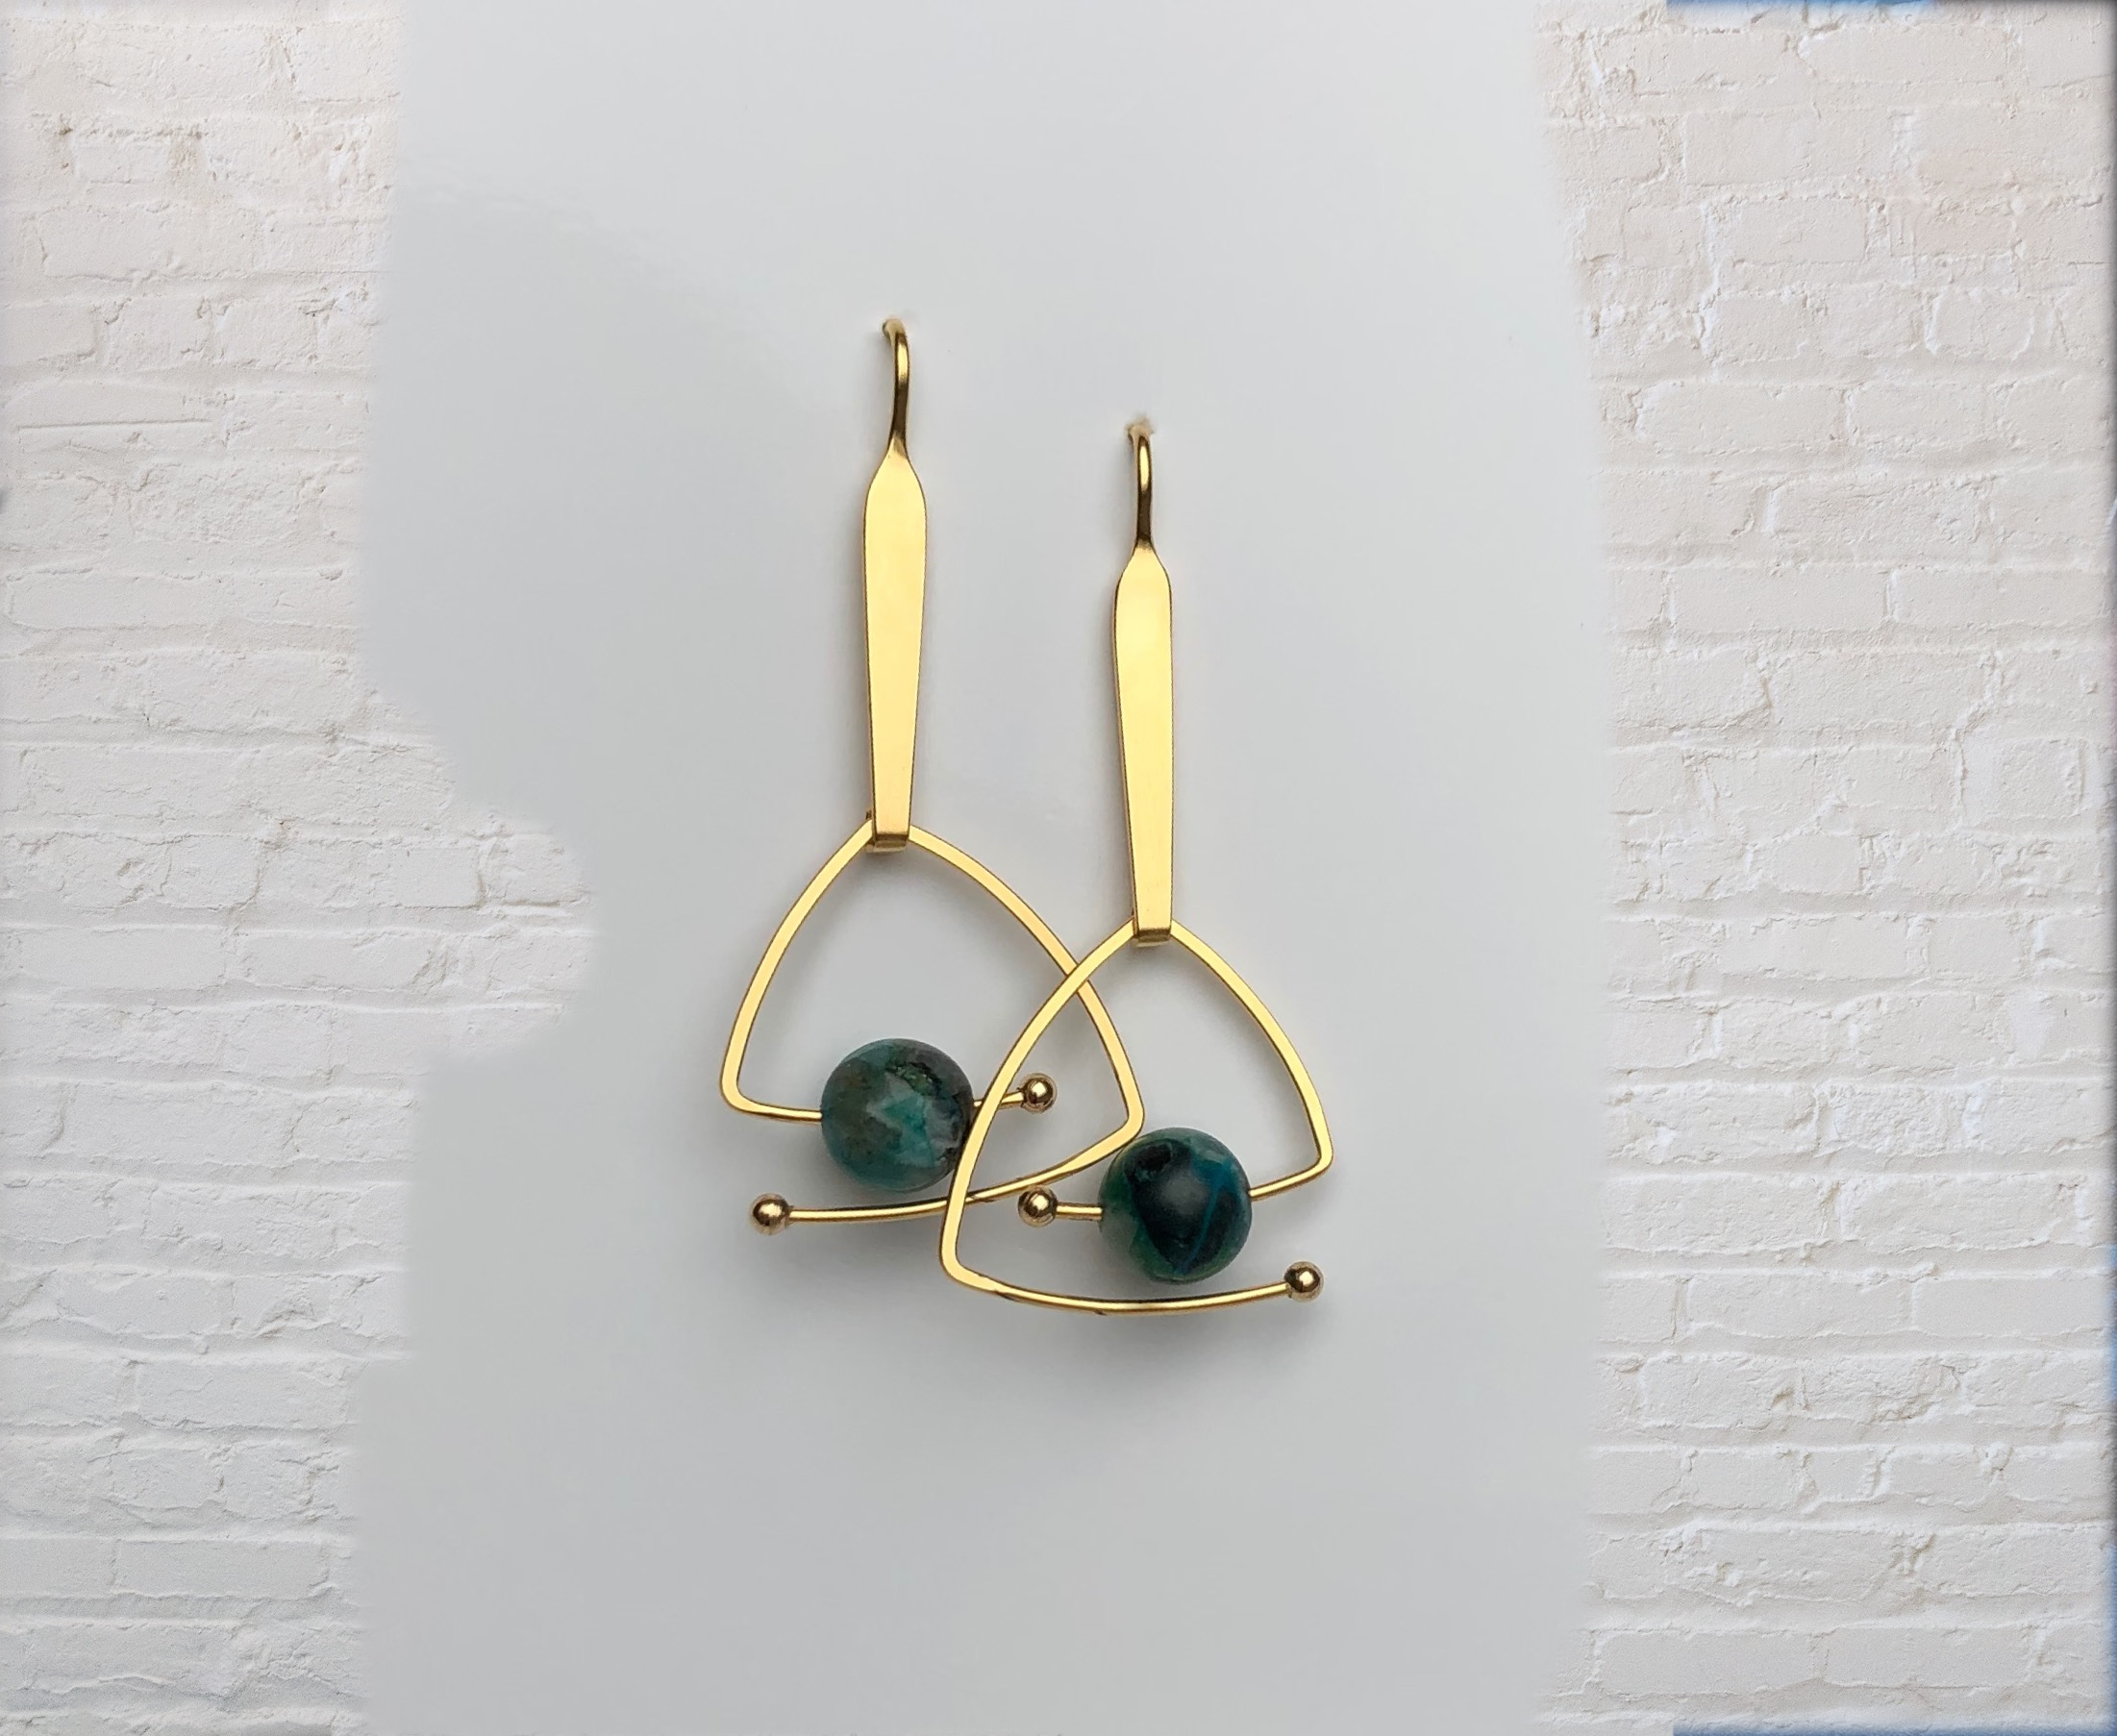 golden earrings : 825 €